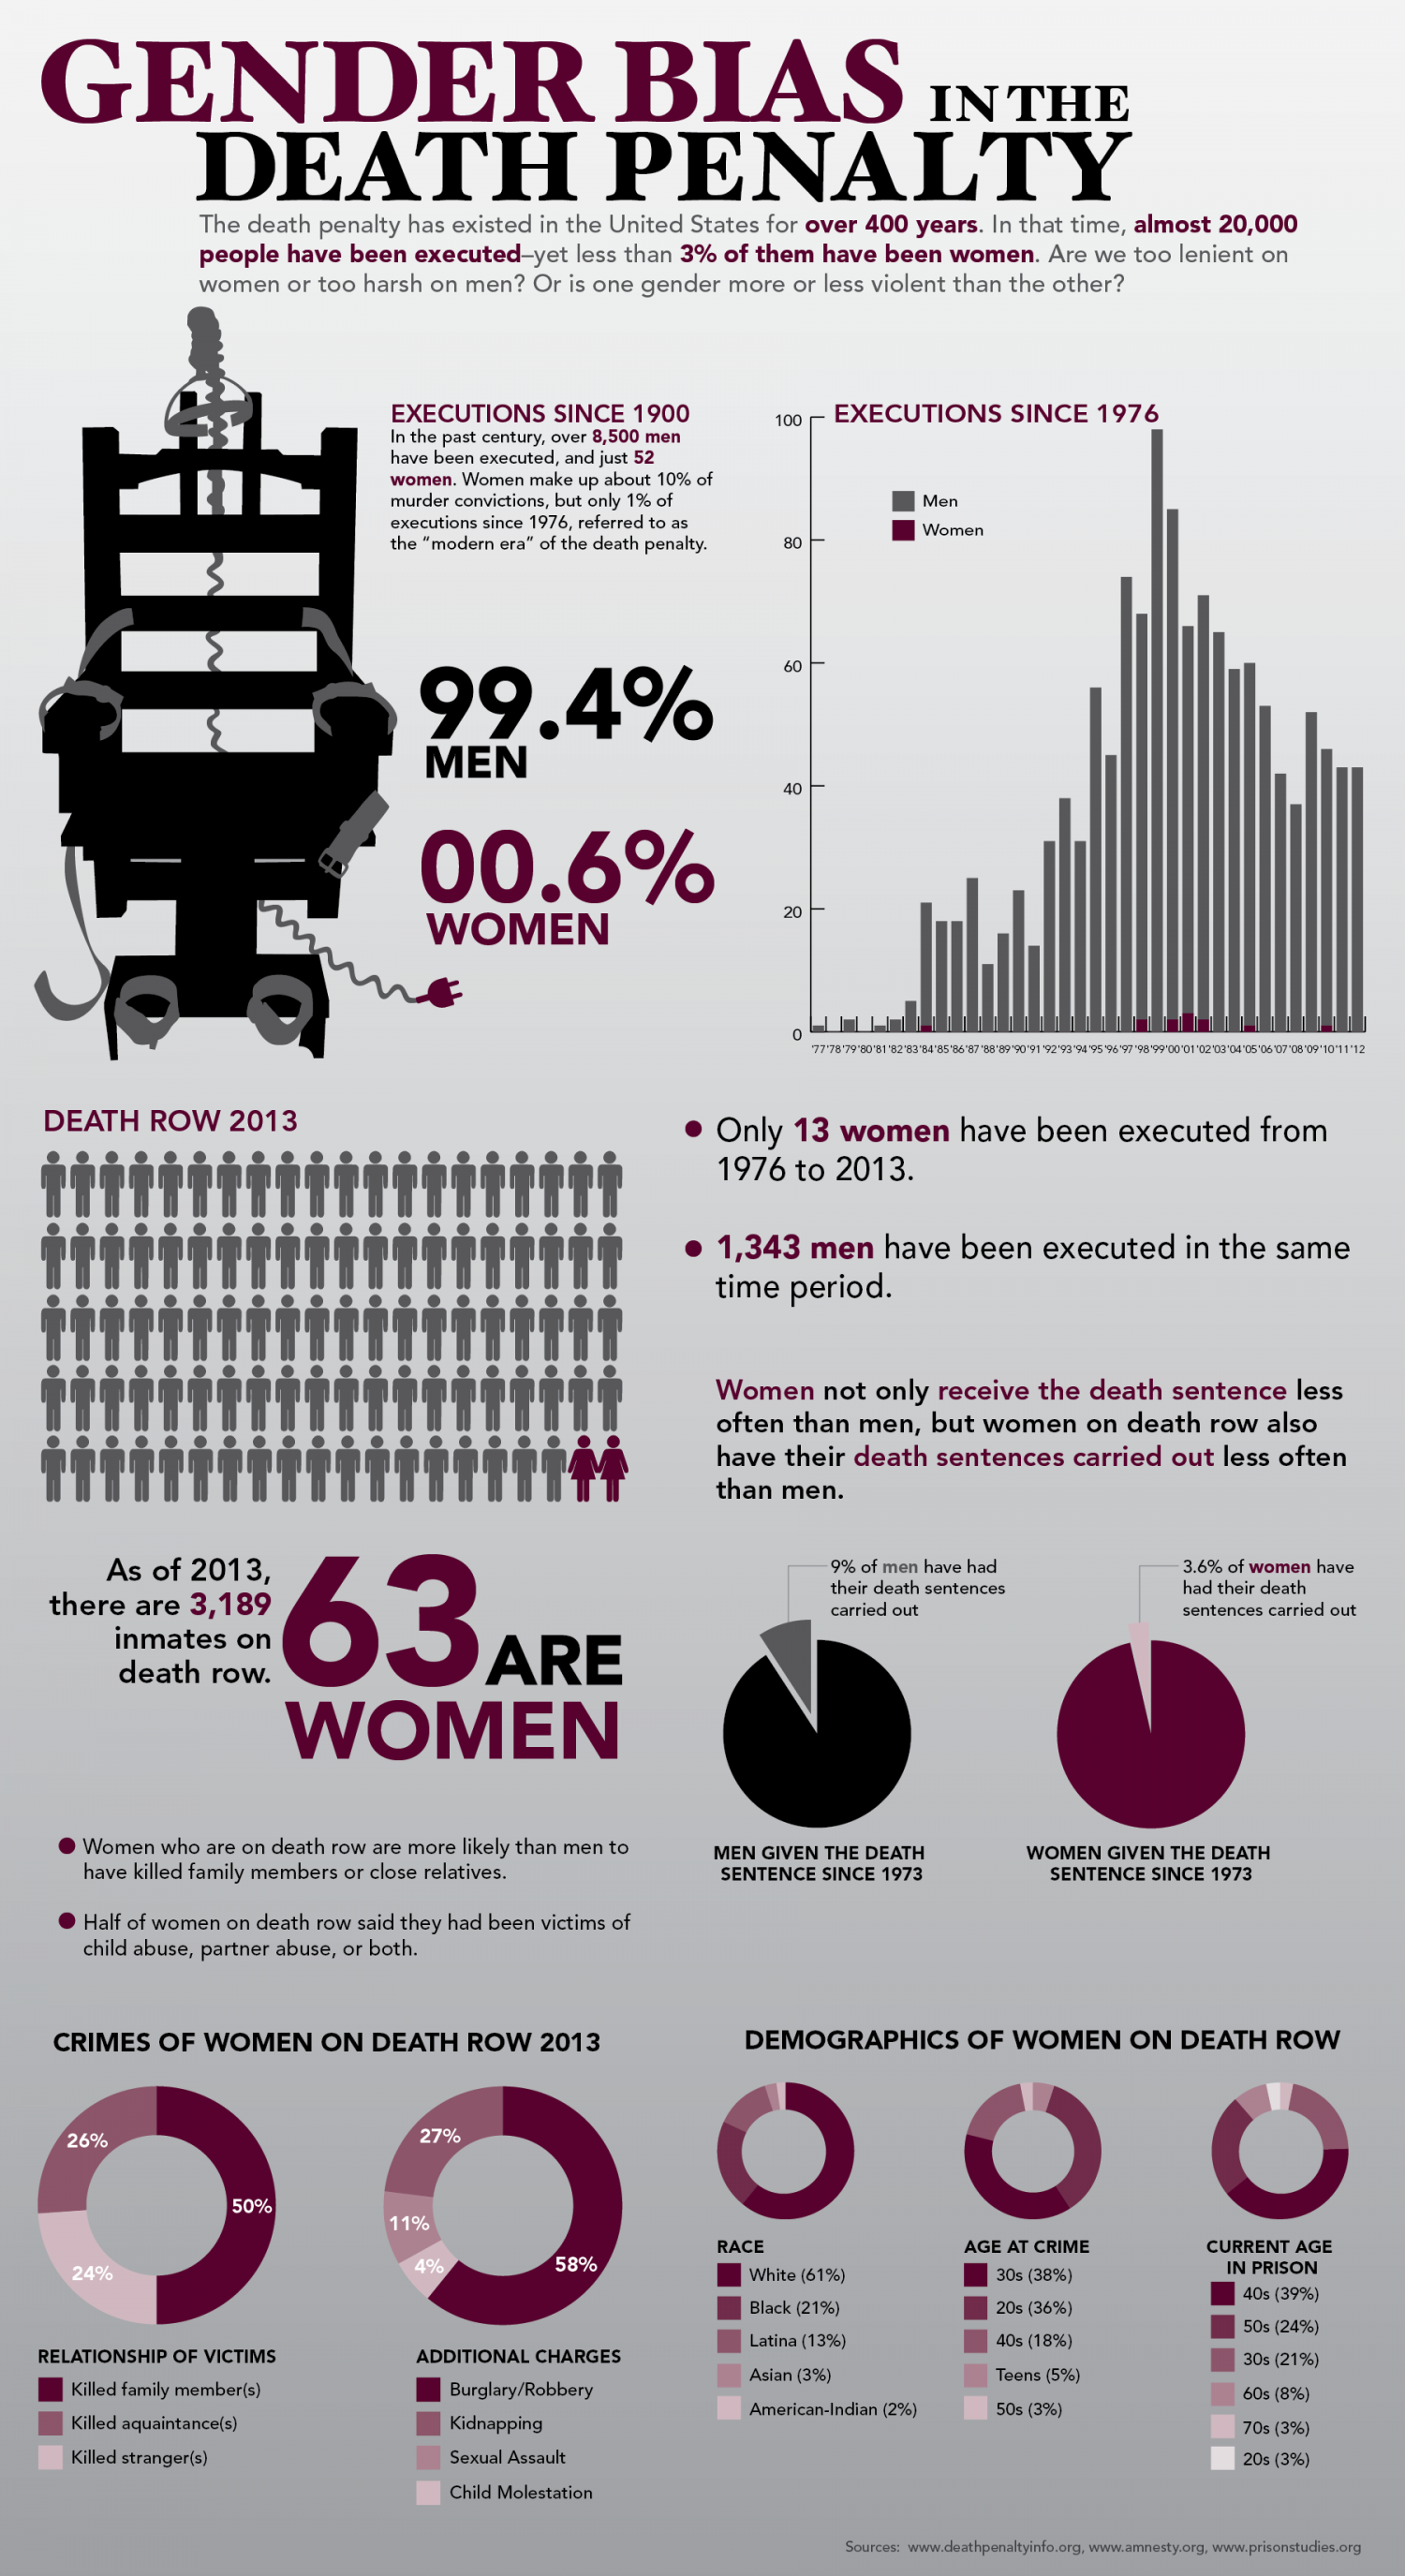 Gender Bias in the Death Penalty Infographic